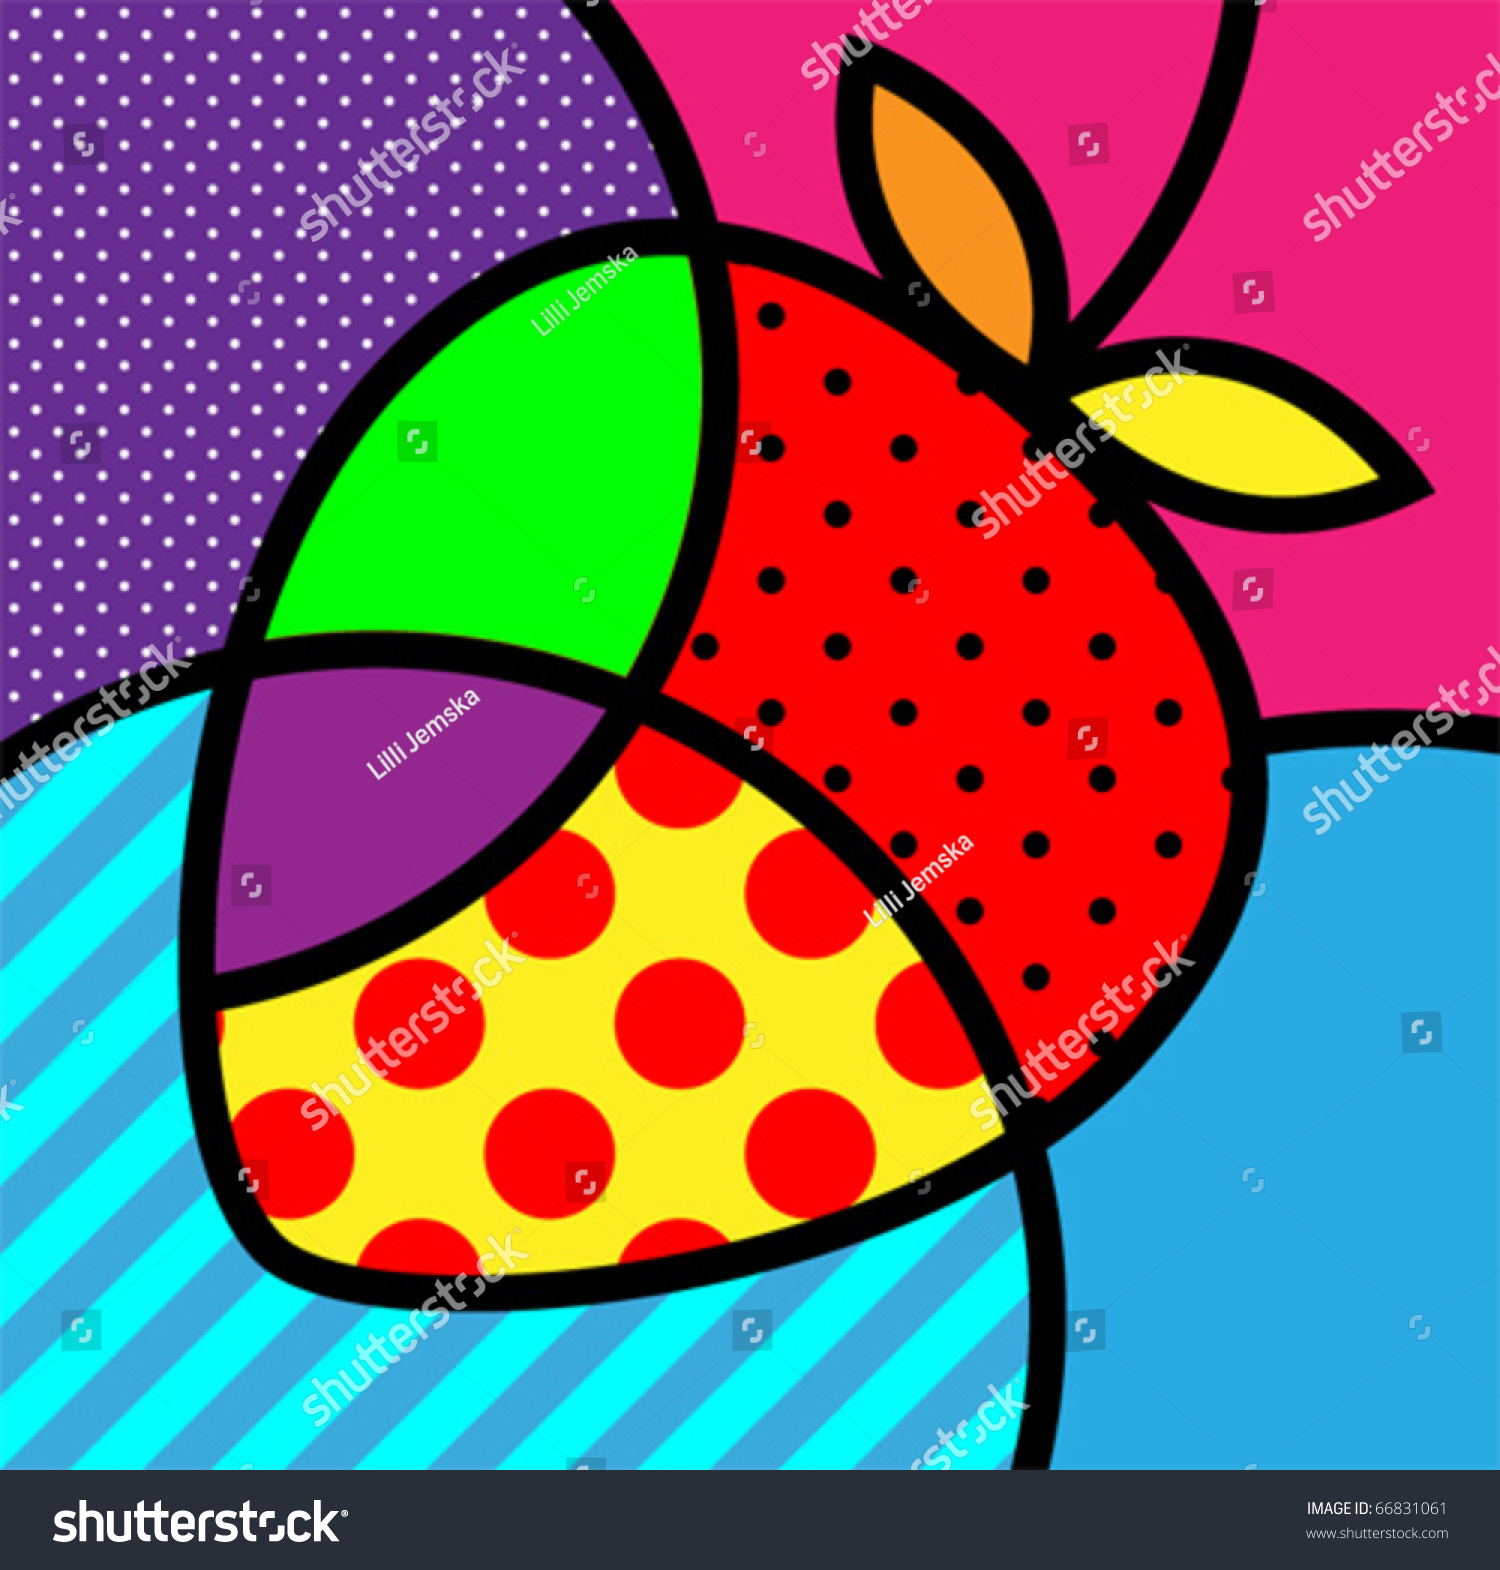 Pop Art Design Strawberry Pop Art Fruits Vector Illustration For Design